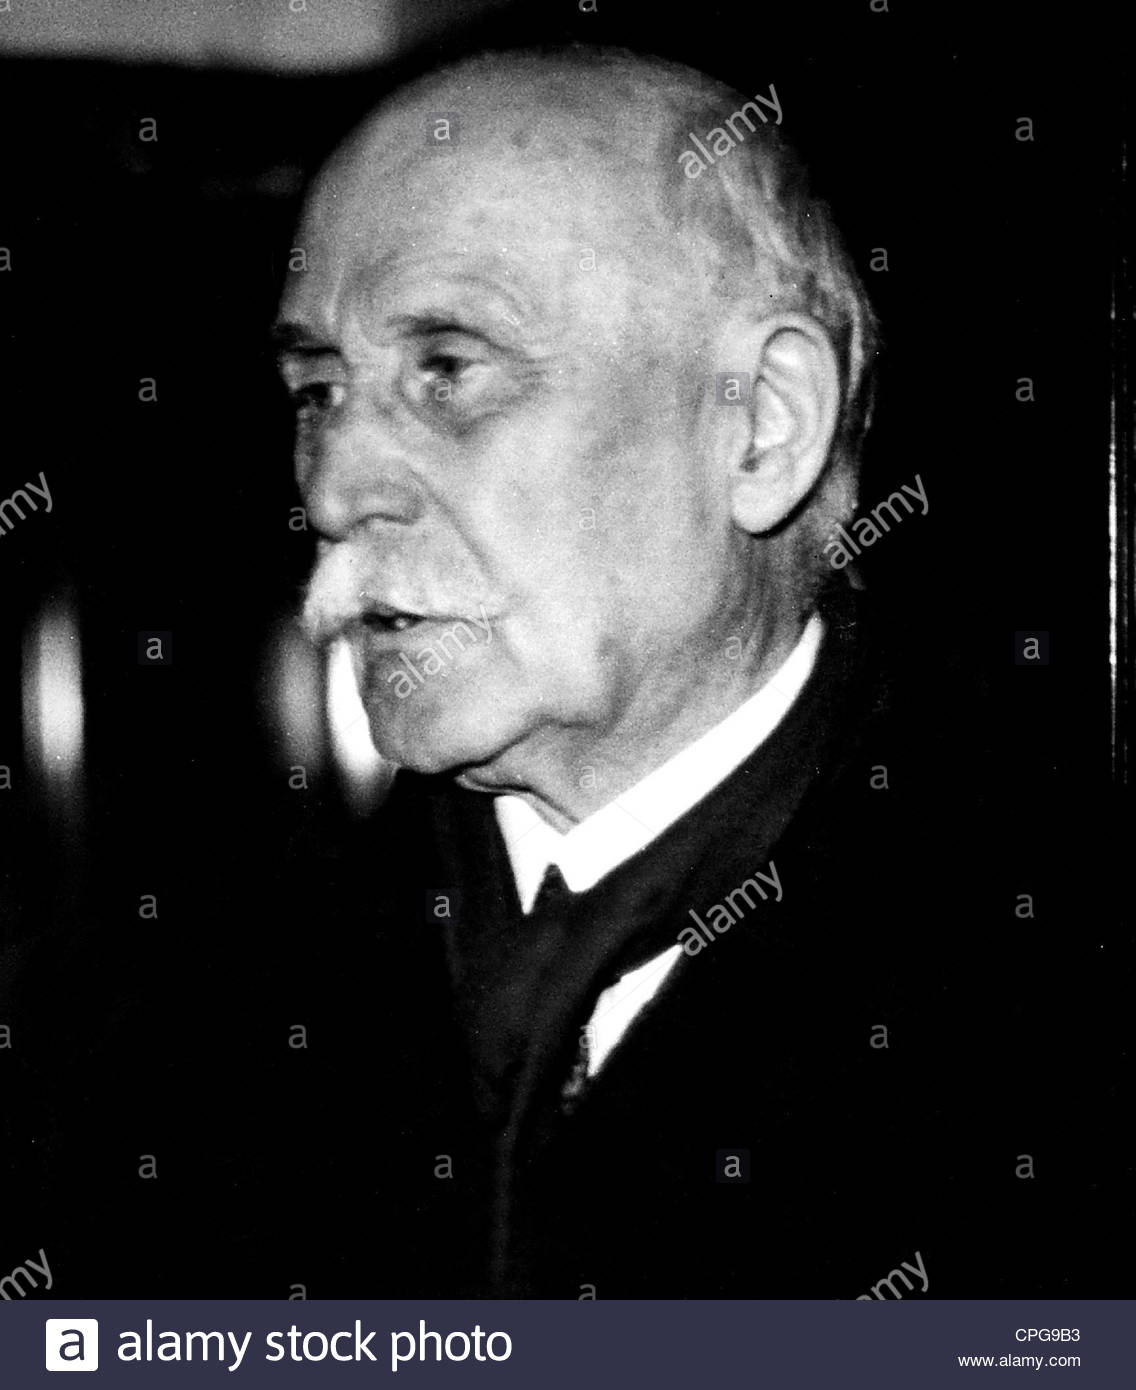 Petain, Henri Philippe, 24.4.1856 - 23.7.1953, French general, politician, portrait, 1945, Additional-Rights-Clearances - Stock Image